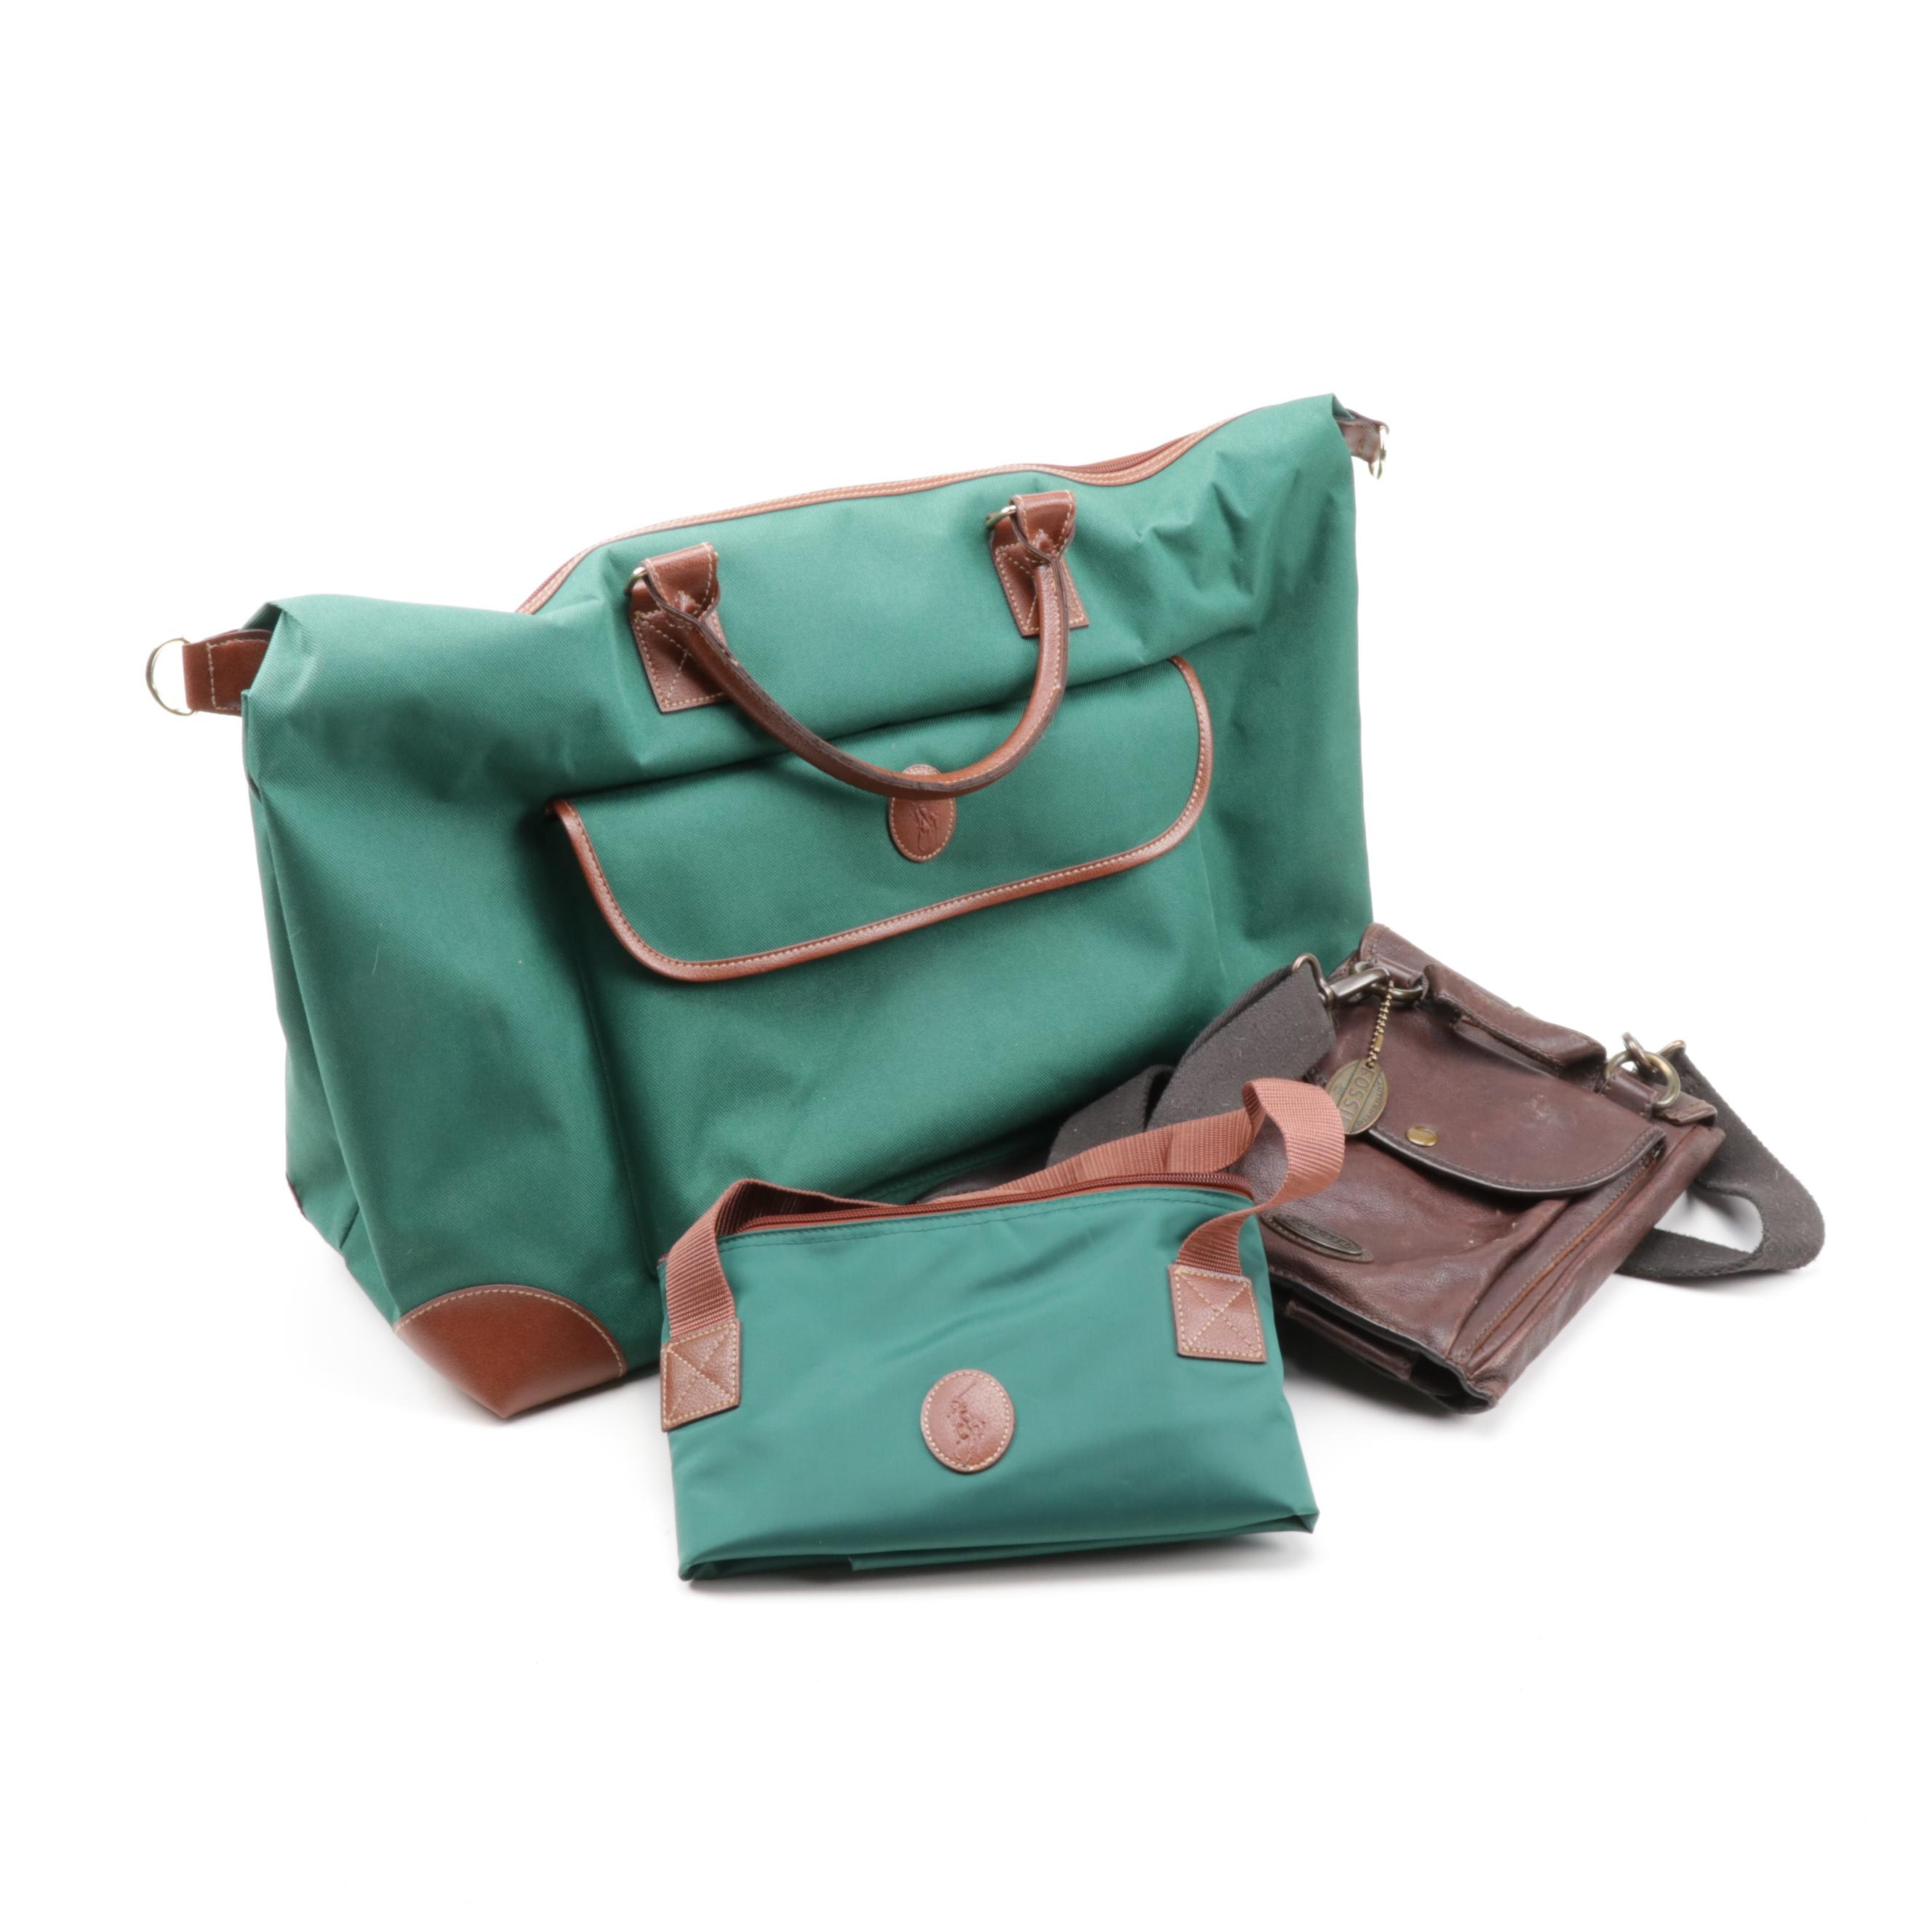 Ralph Lauren Tote and Duffel Bag, and Fossil Leather Crossbody iPad Bag